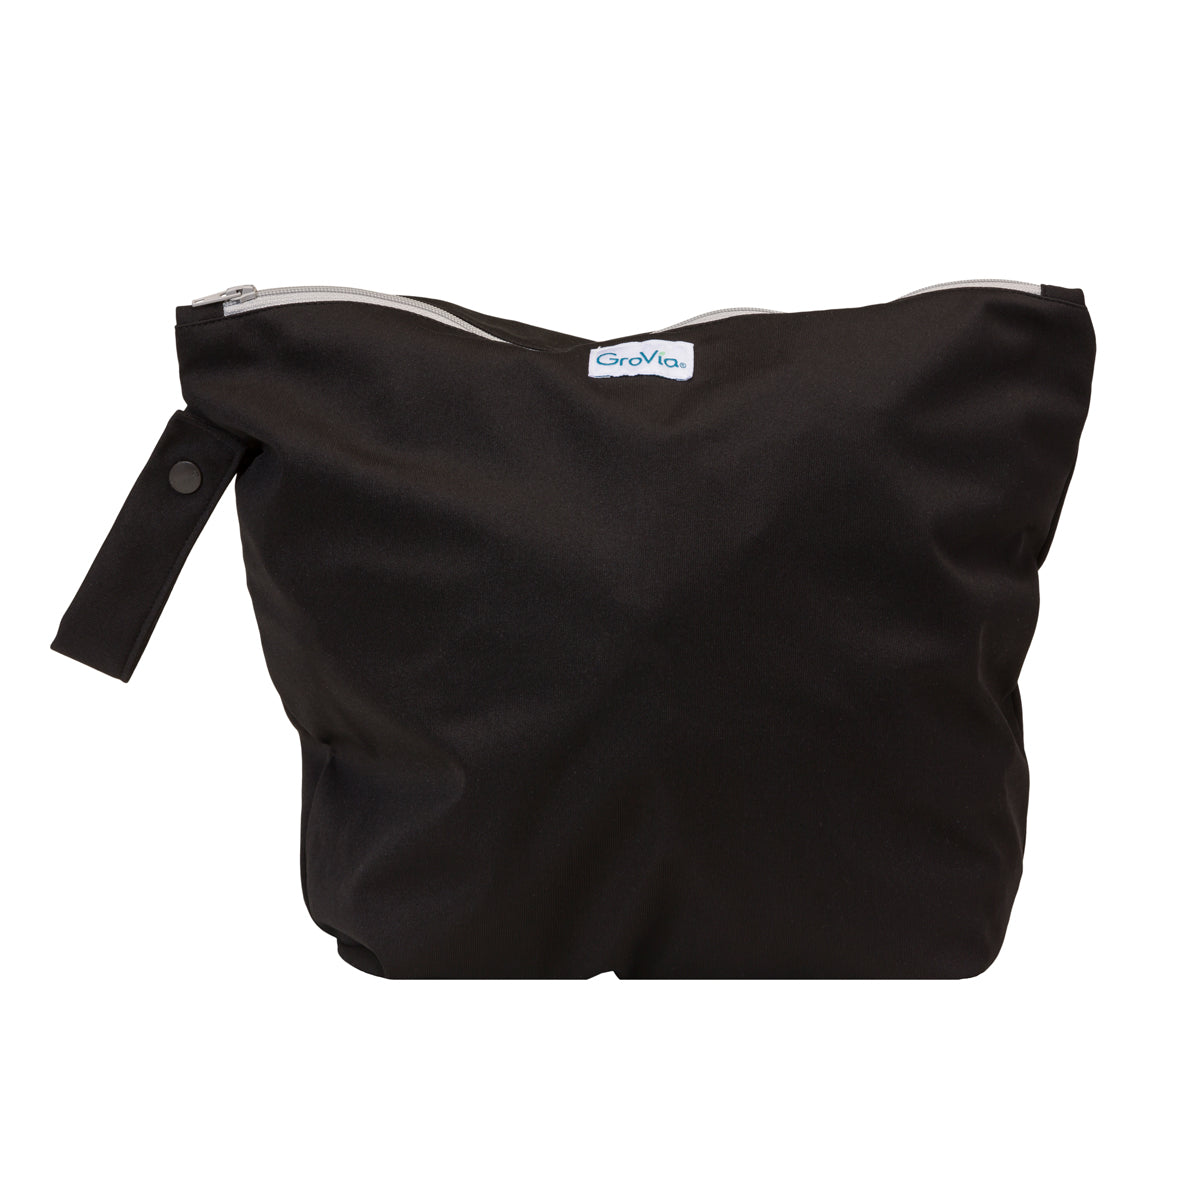 Jet Wet Bag - Crunch Natural Parenting is where to buy